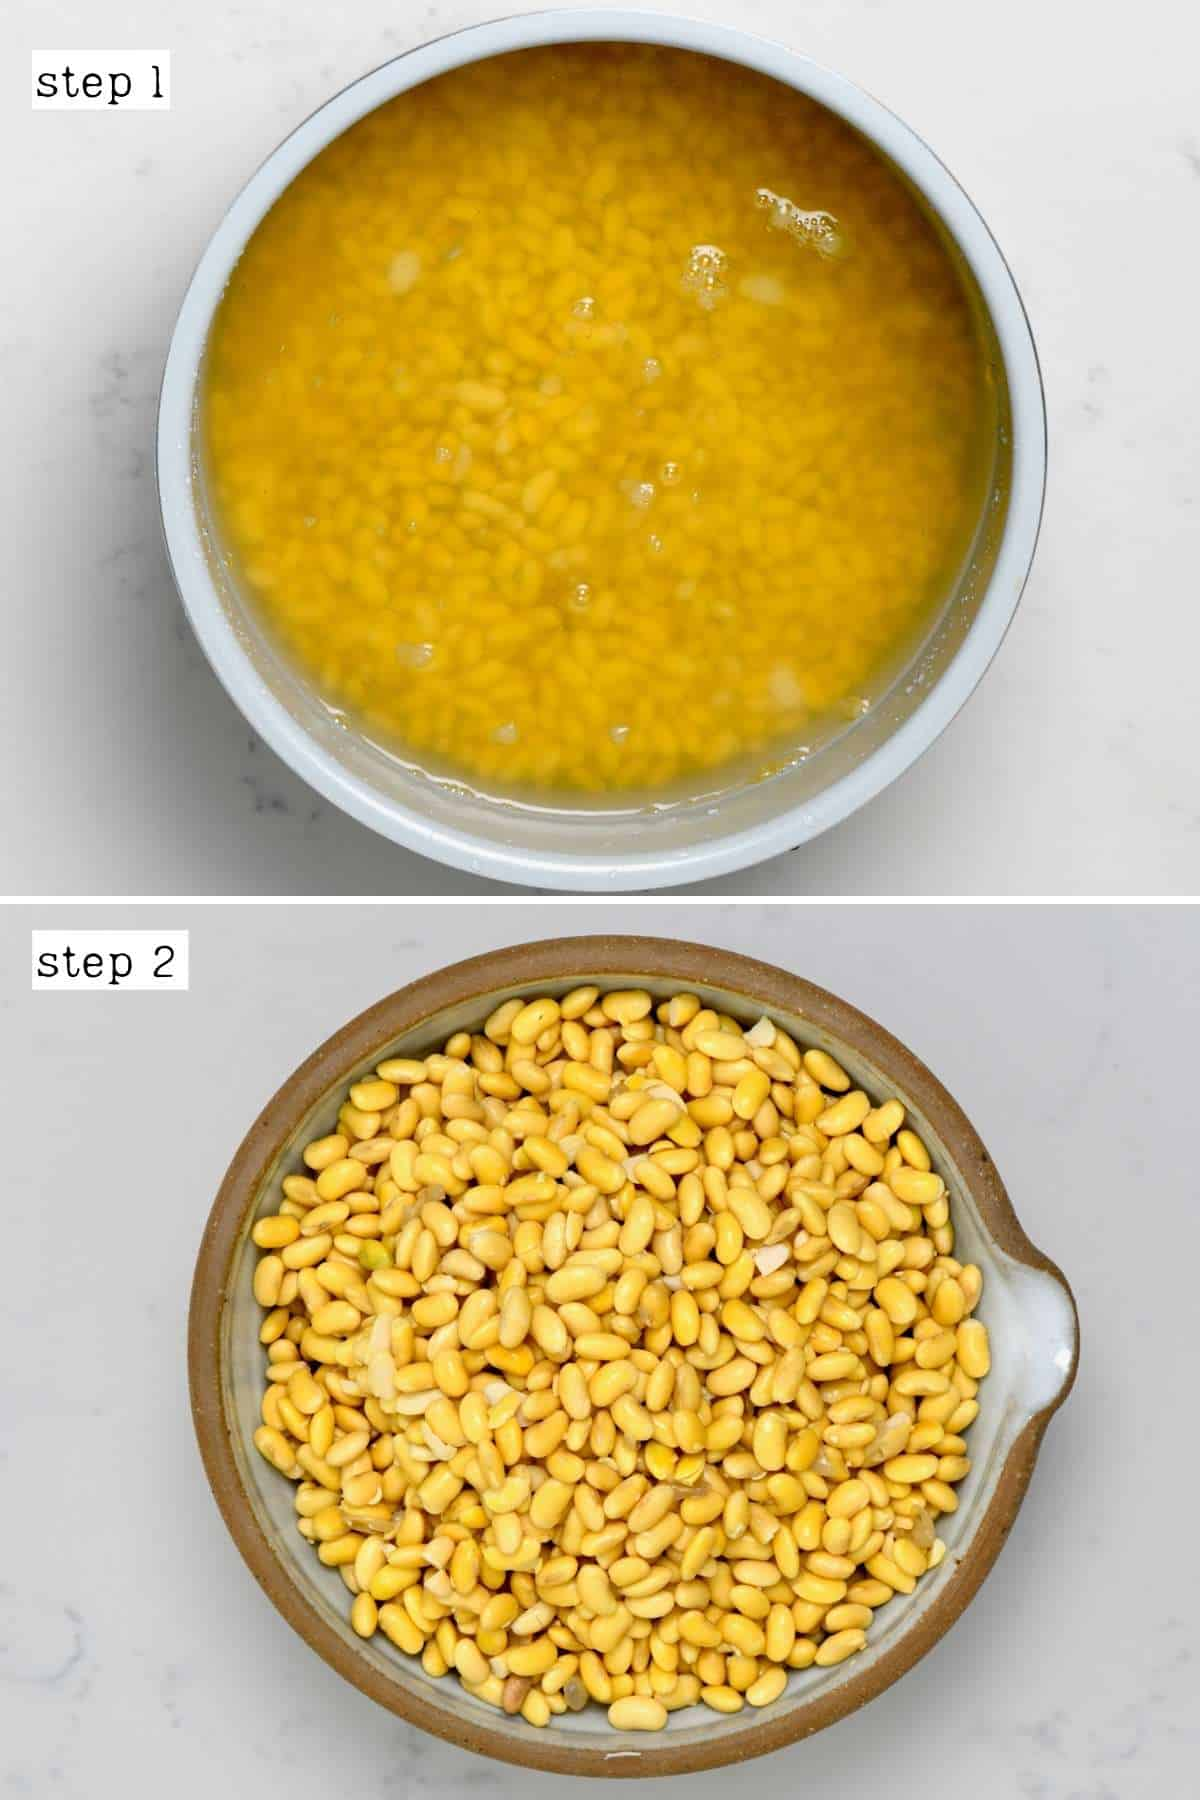 Steps for soaking soybeans